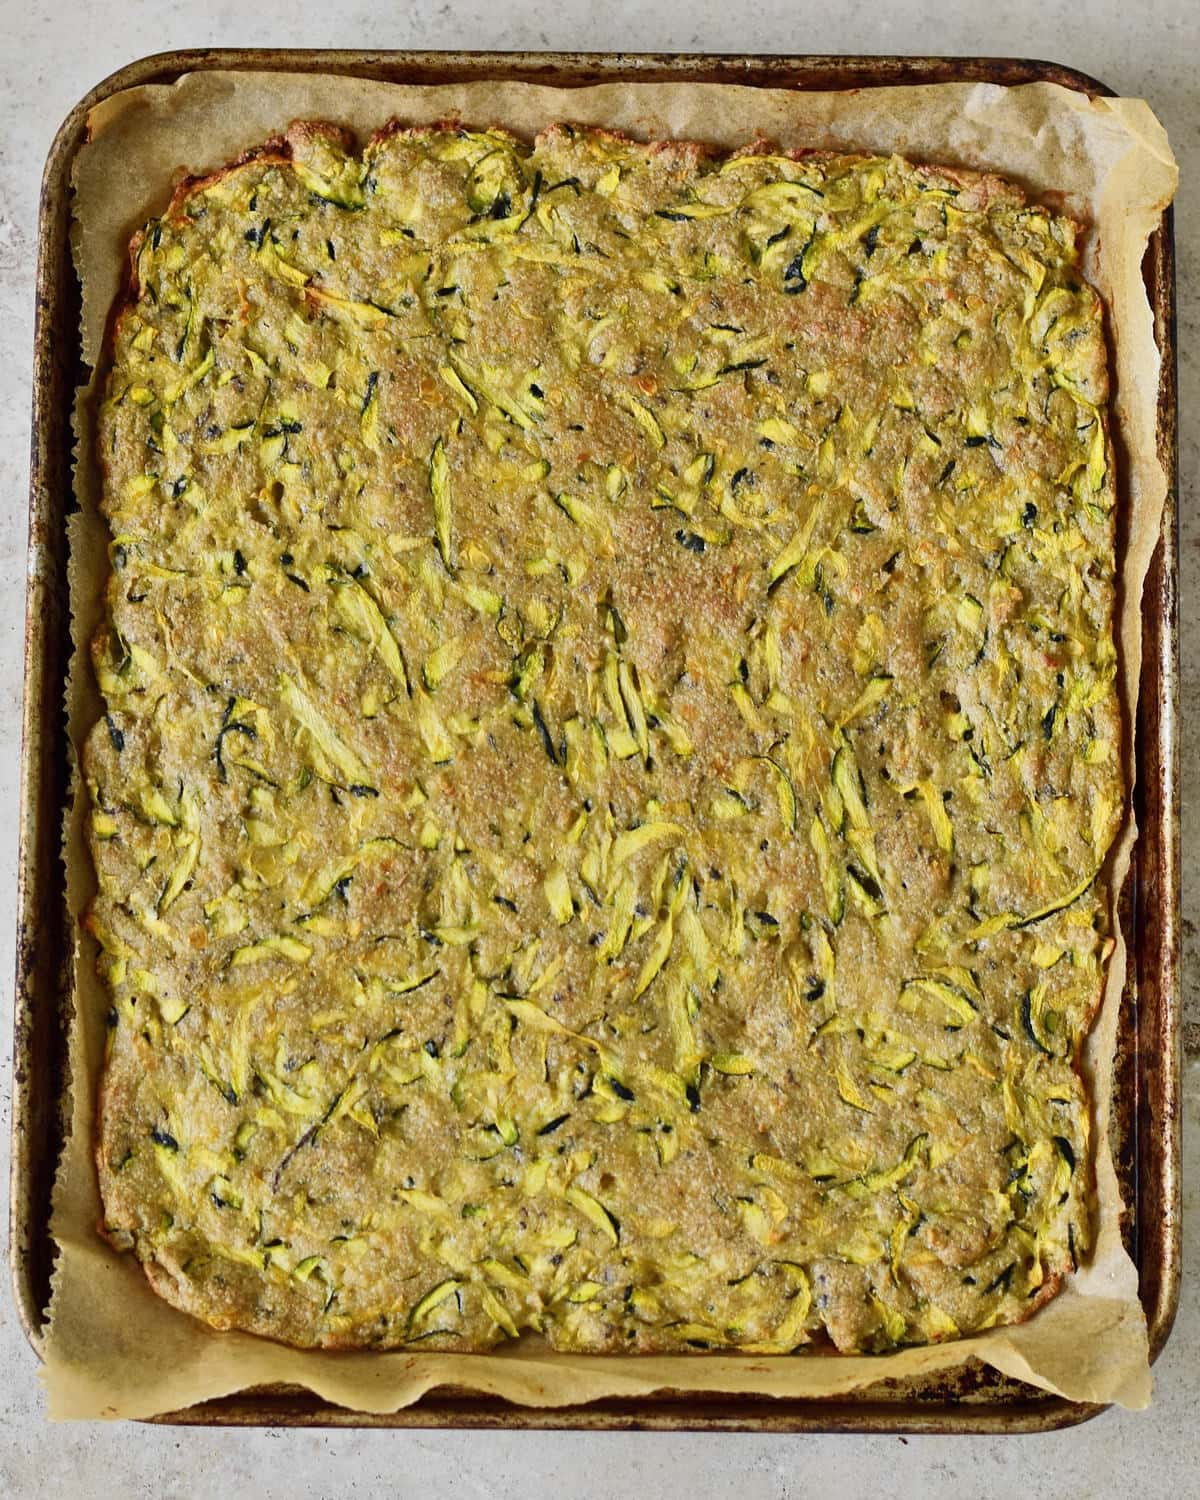 baked rectangular zucchini pizza crust without toppings